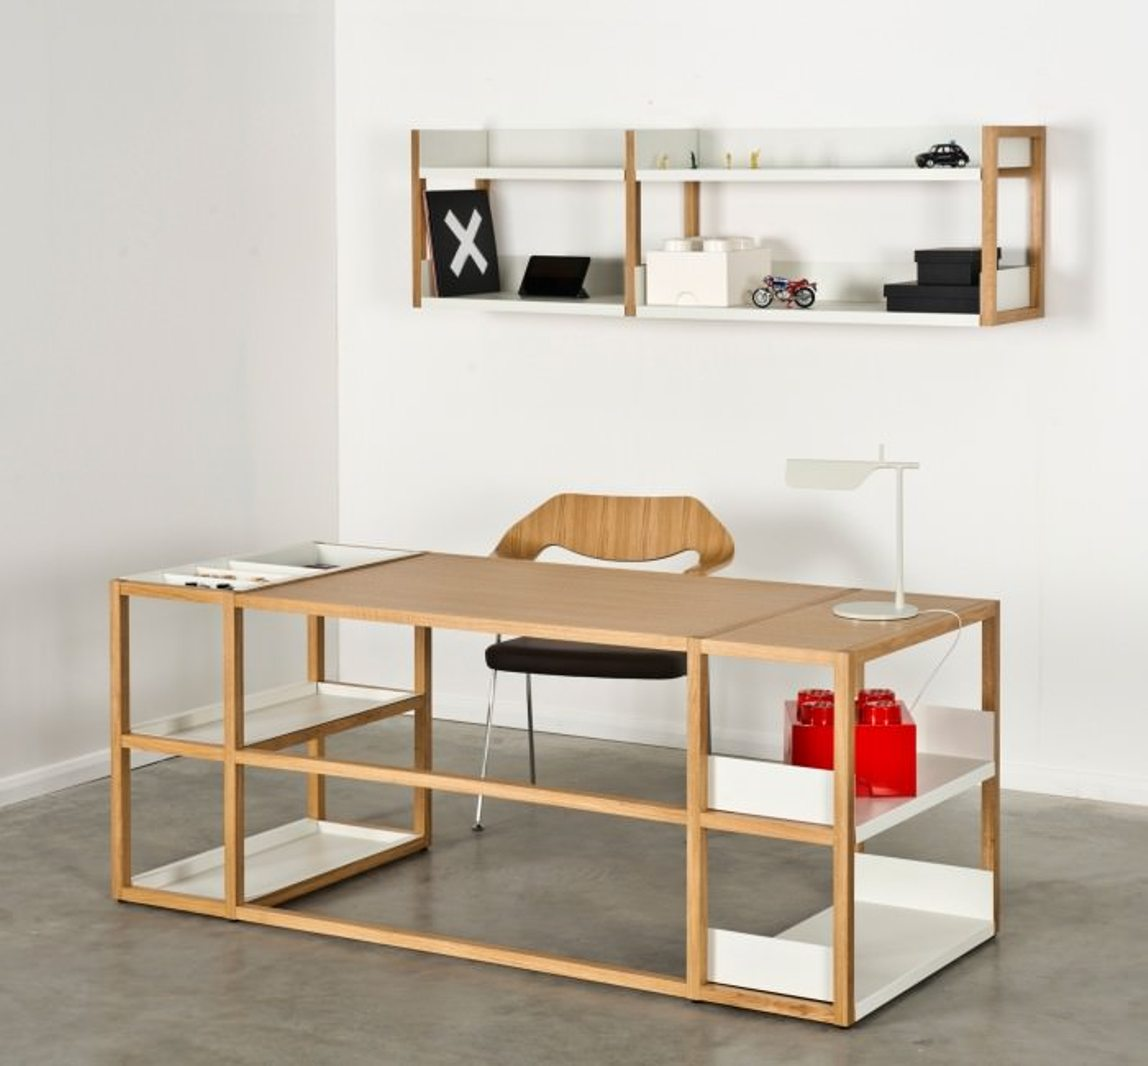 CroppedFocusedImage70065050-50-Lap-wall-shelving-marina-bautier-with-desk-dressed